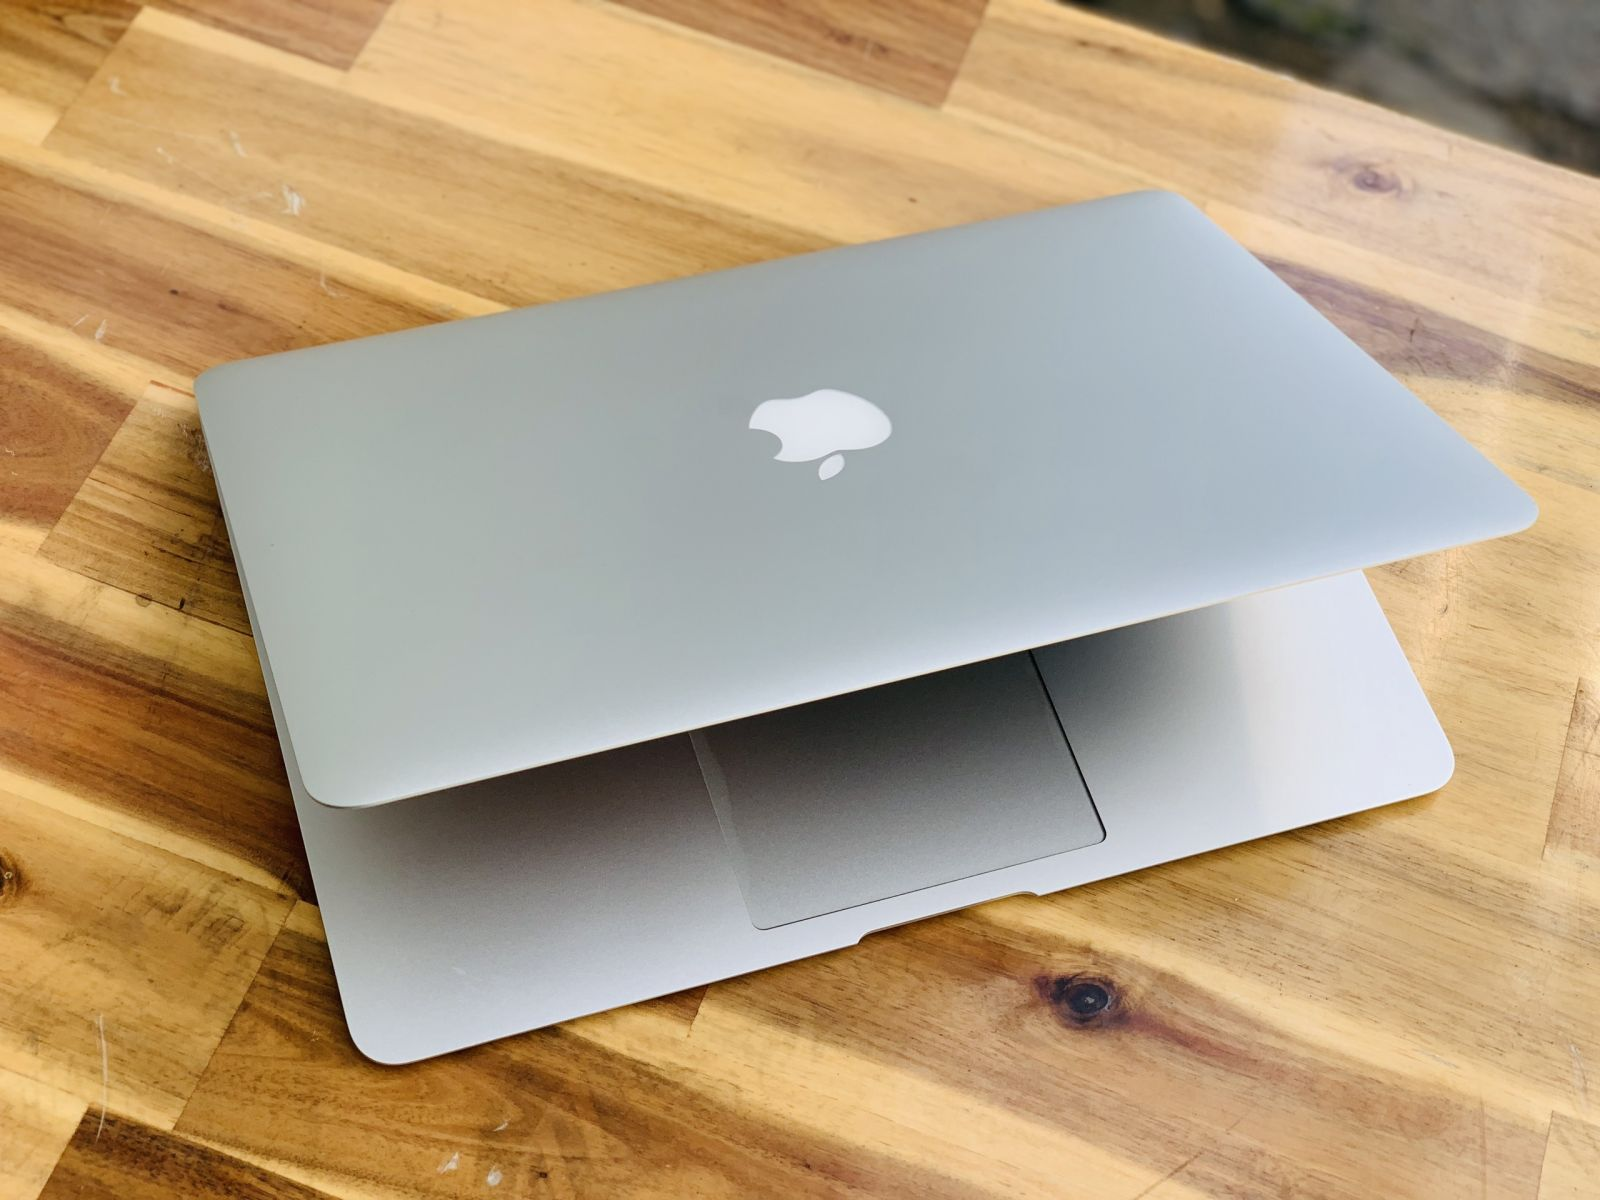 macbook air 2014 i7